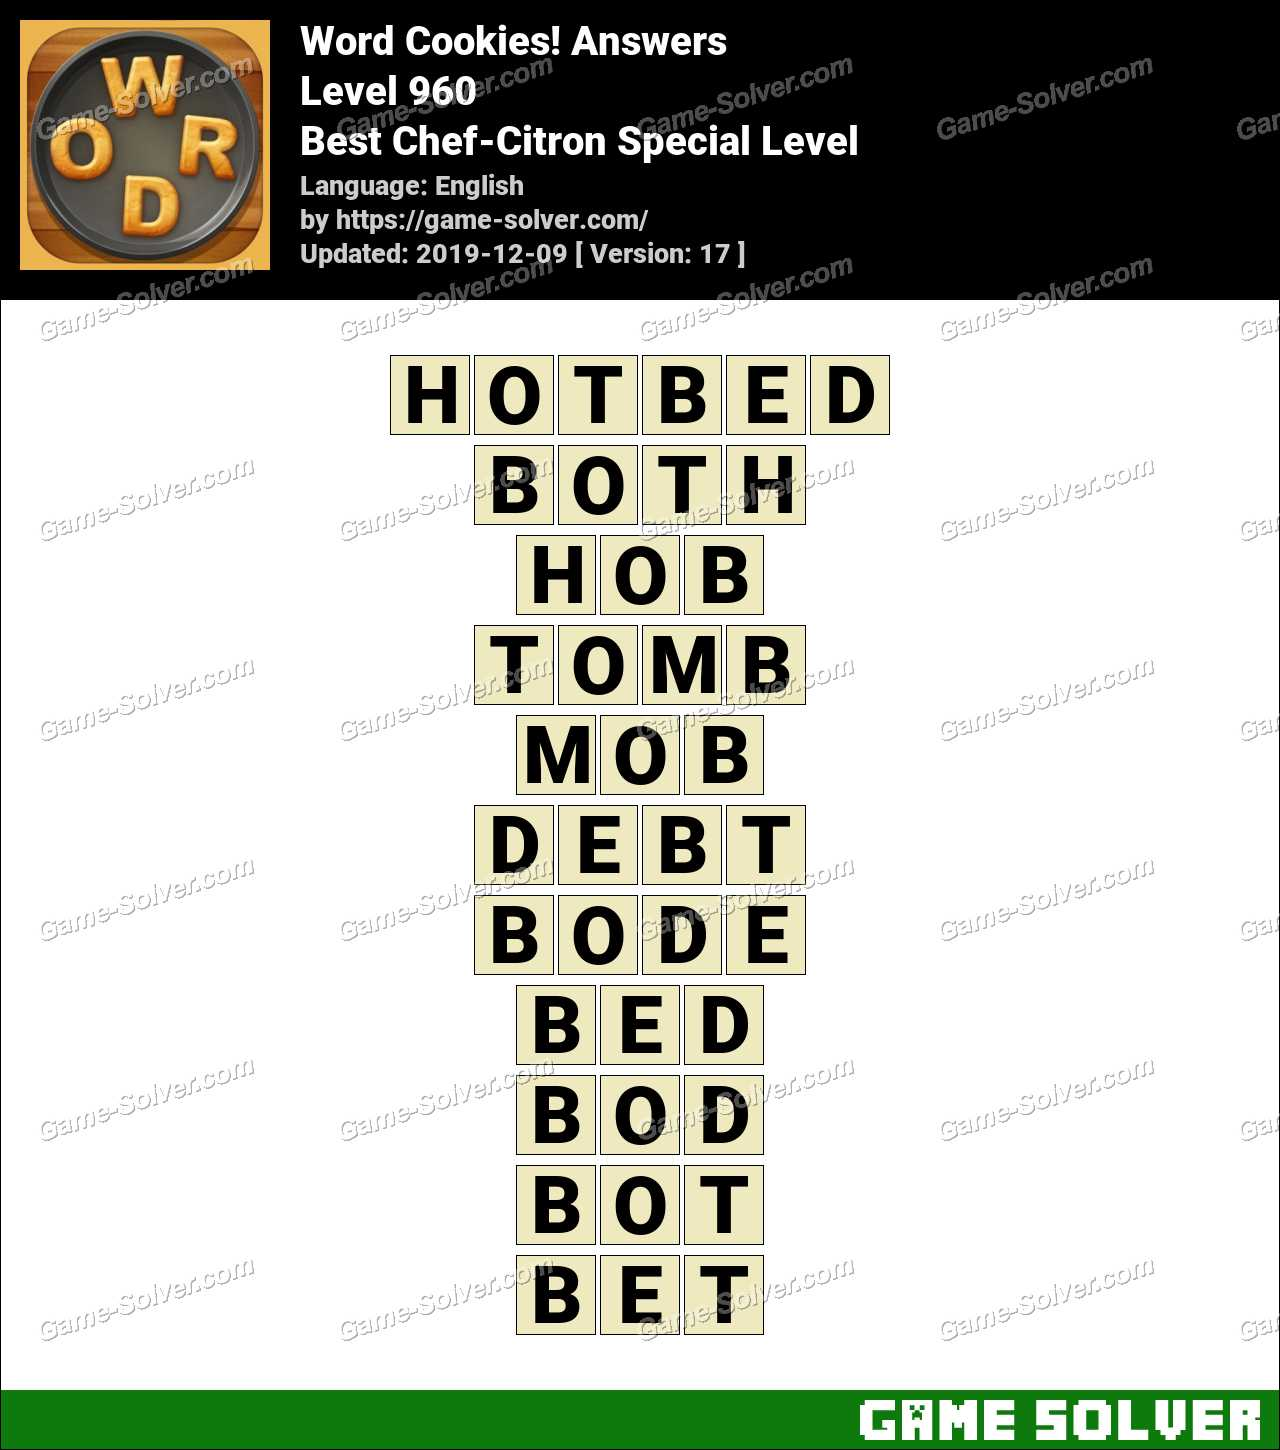 Word Cookies Best Chef-Citron Special Level Answers